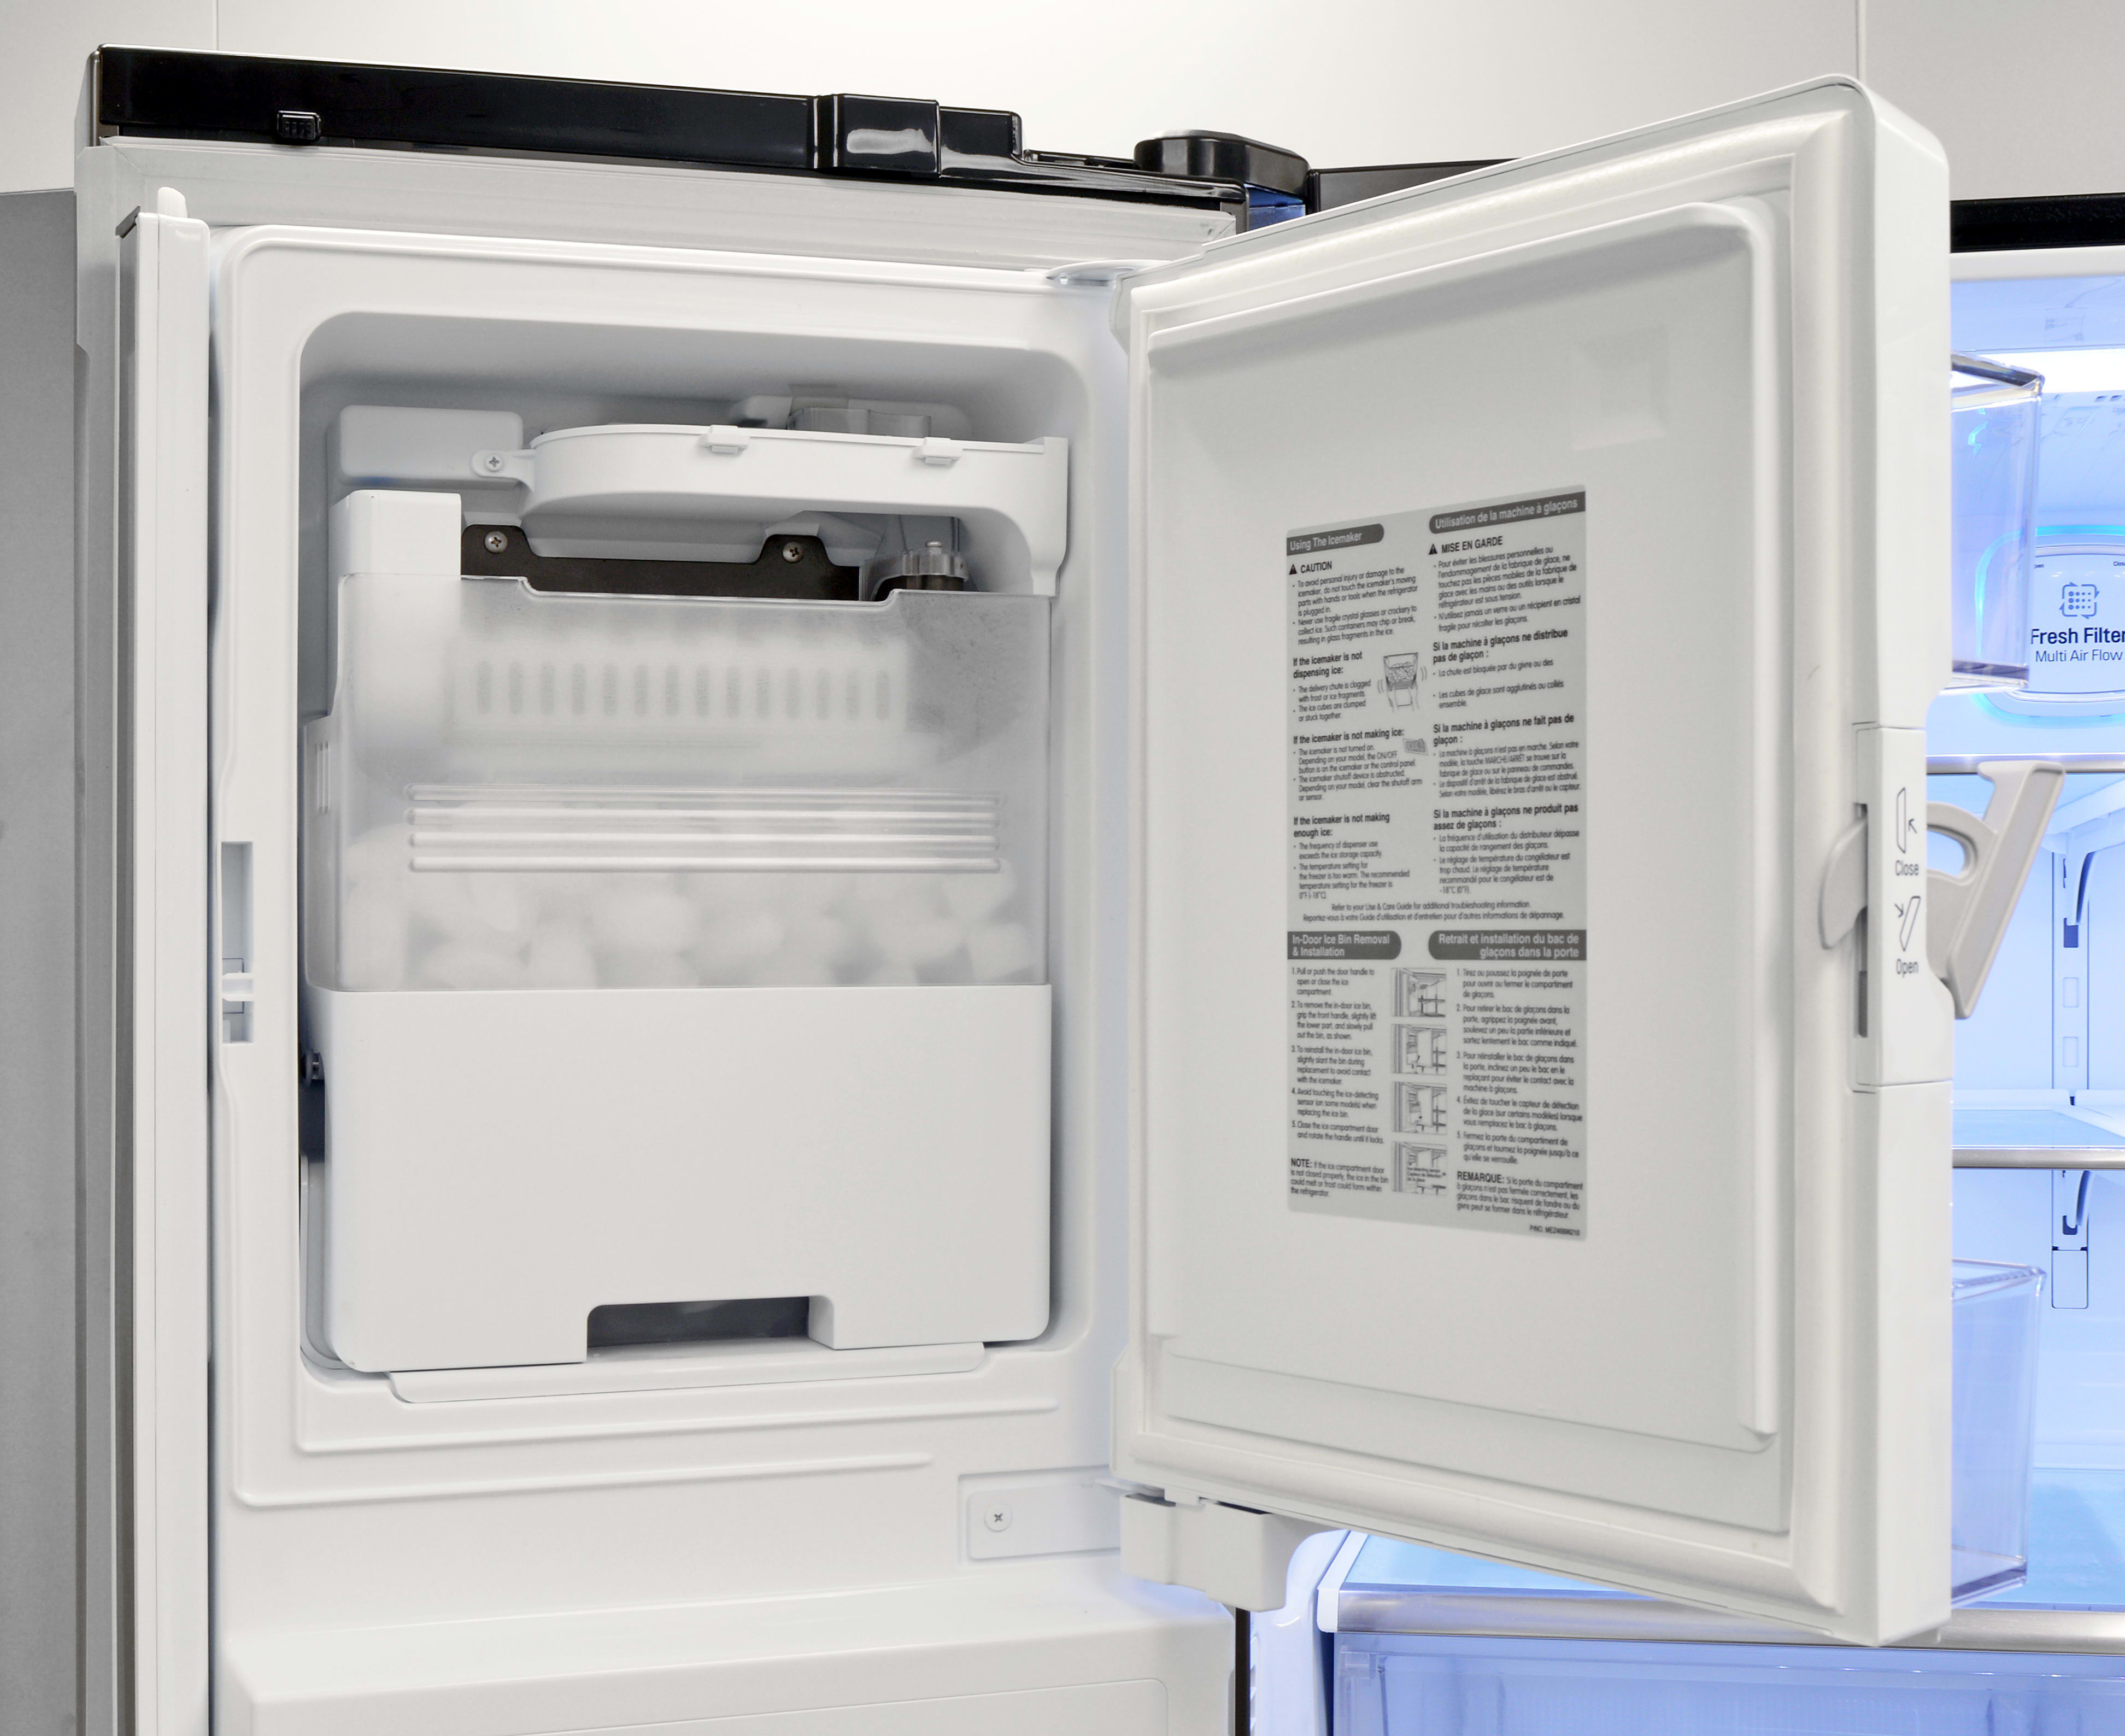 The LG LPXS30866D's door-mounted ice maker takes up minimal space while still holding plenty of cubes.